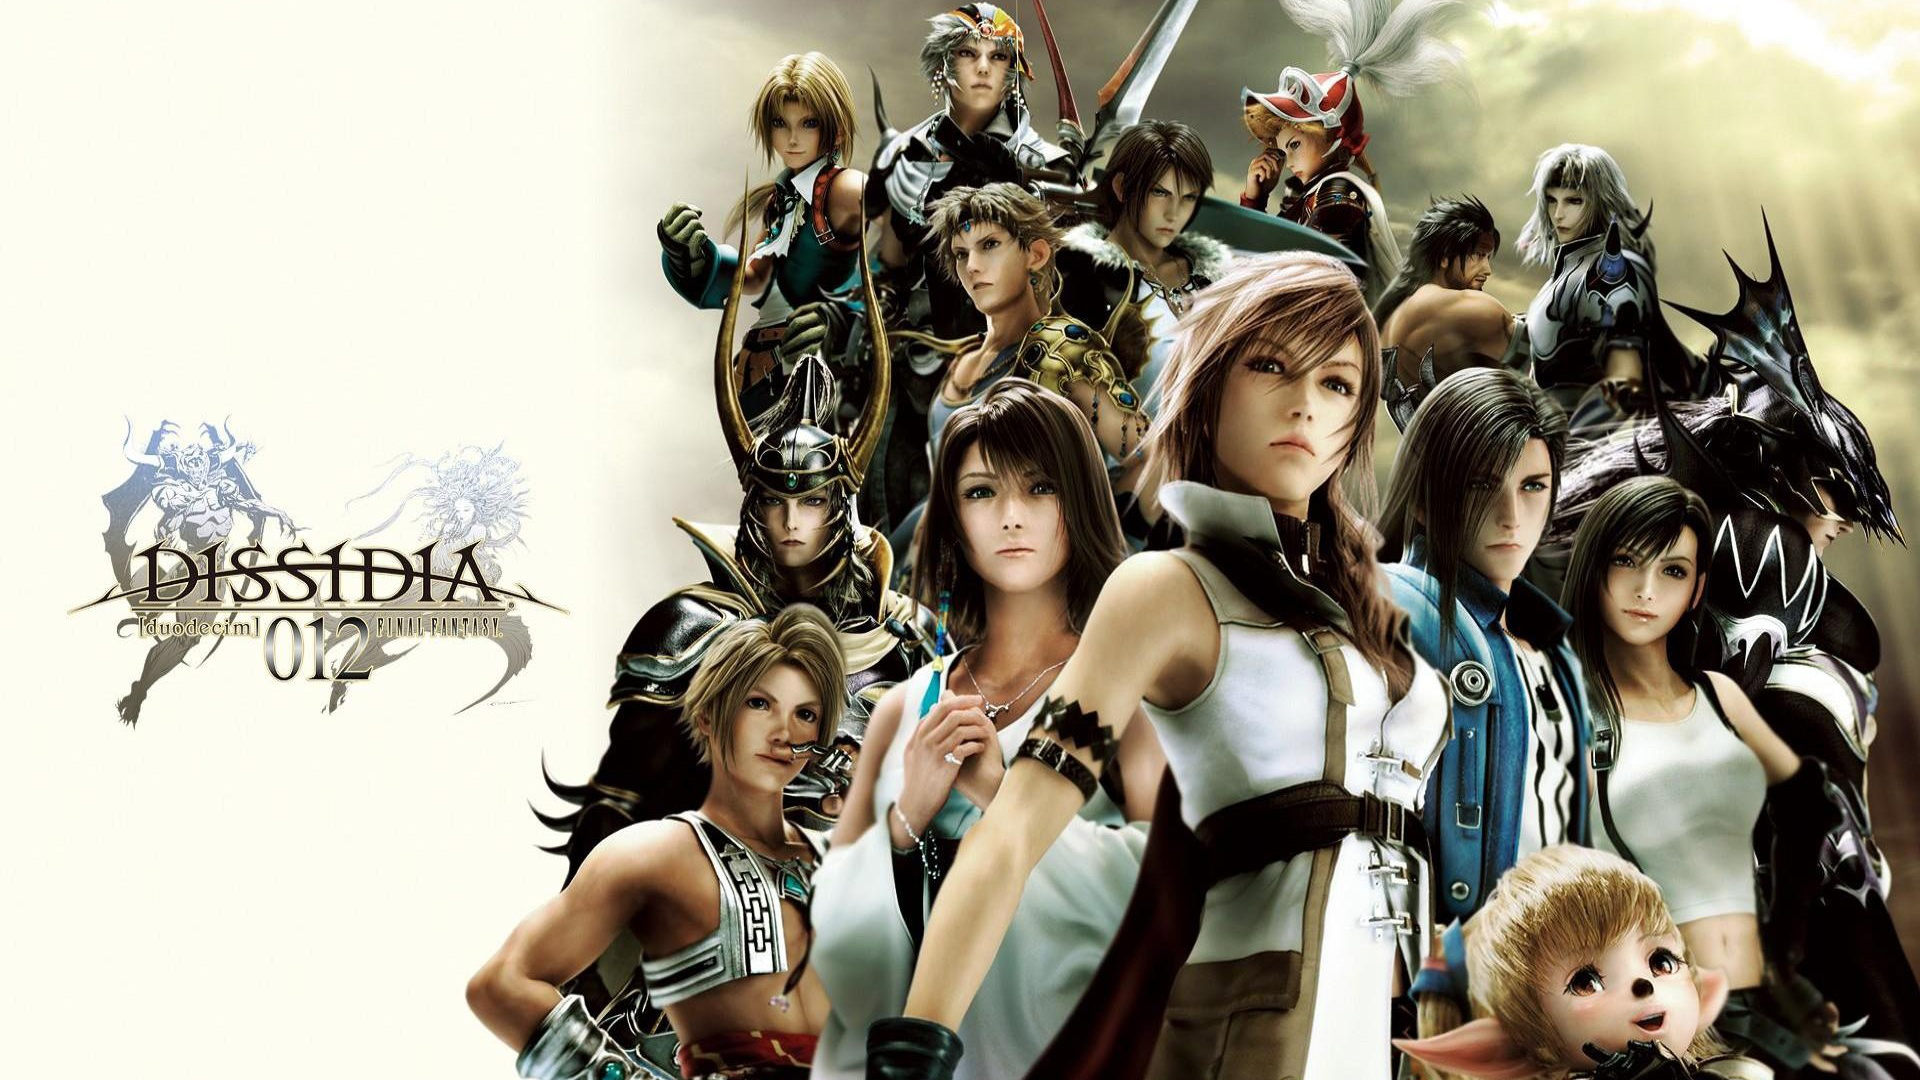 Dissidia 012: Final Fantasy HD wallpaper - 1920x1080